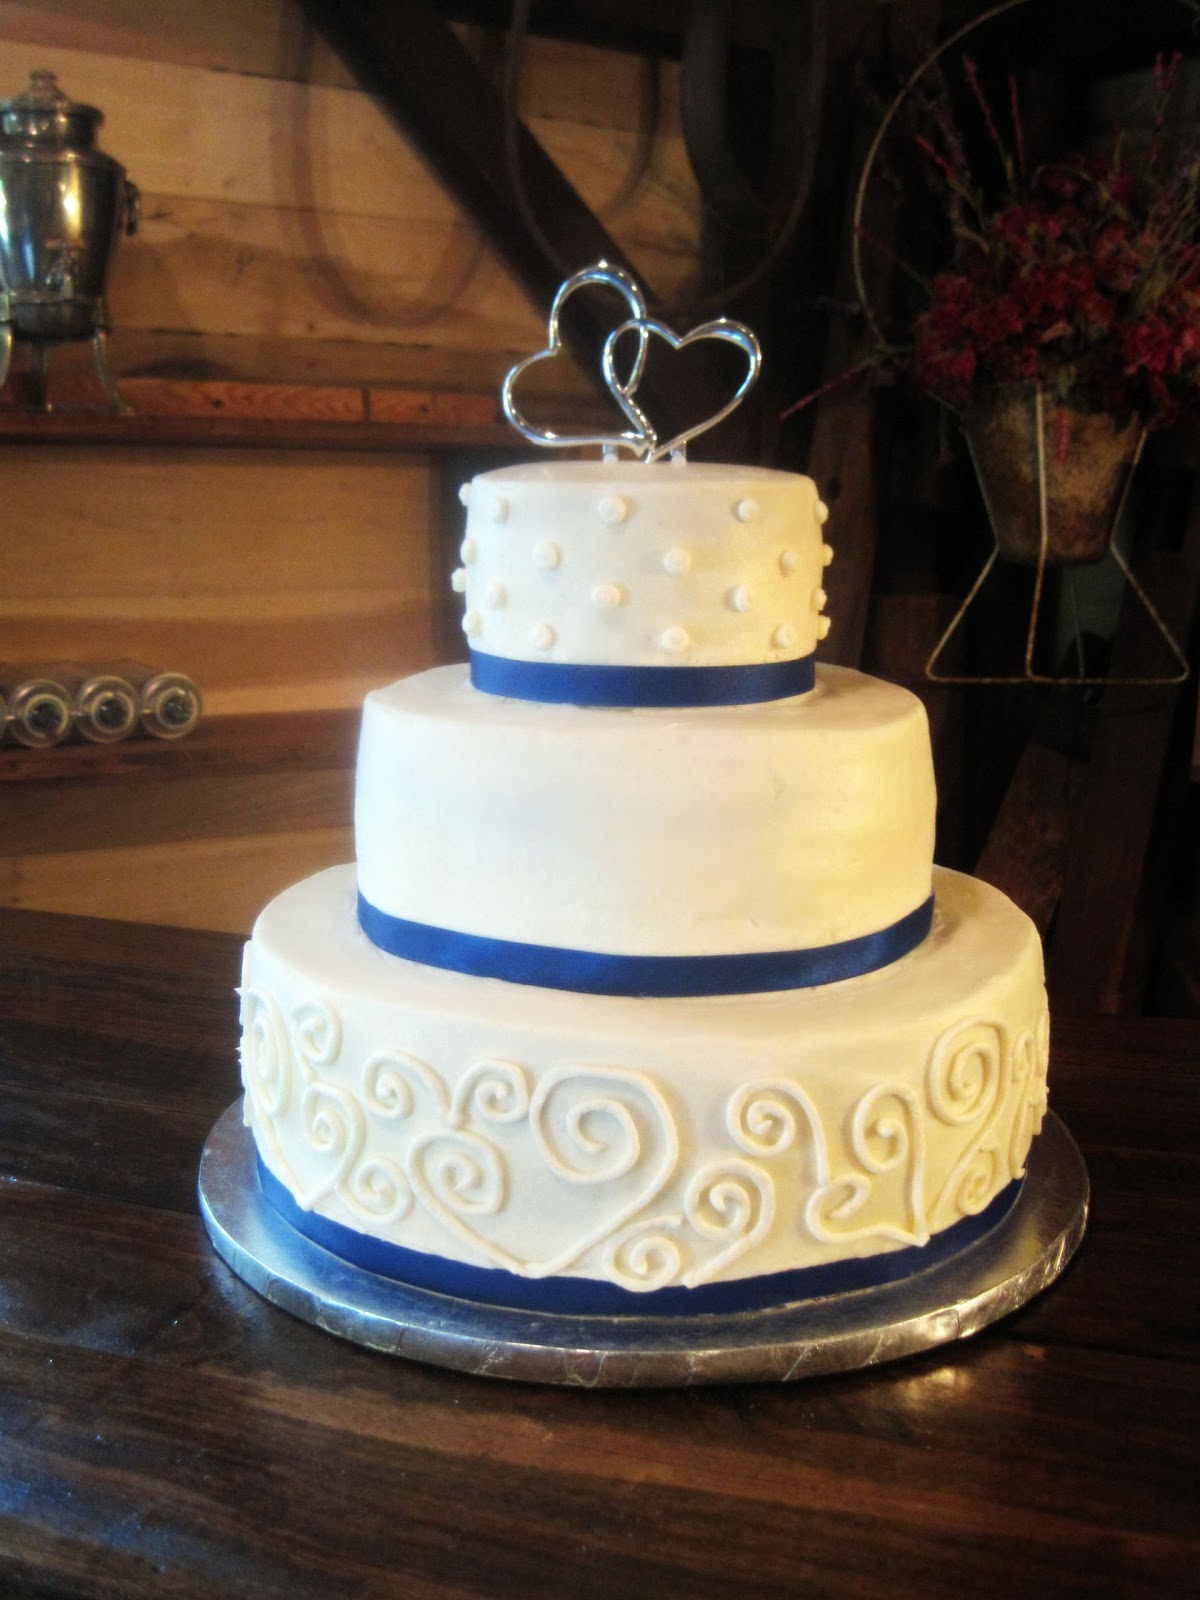 Have a Piece of Cake: A Beautiful Country Wedding Cake - photo#39